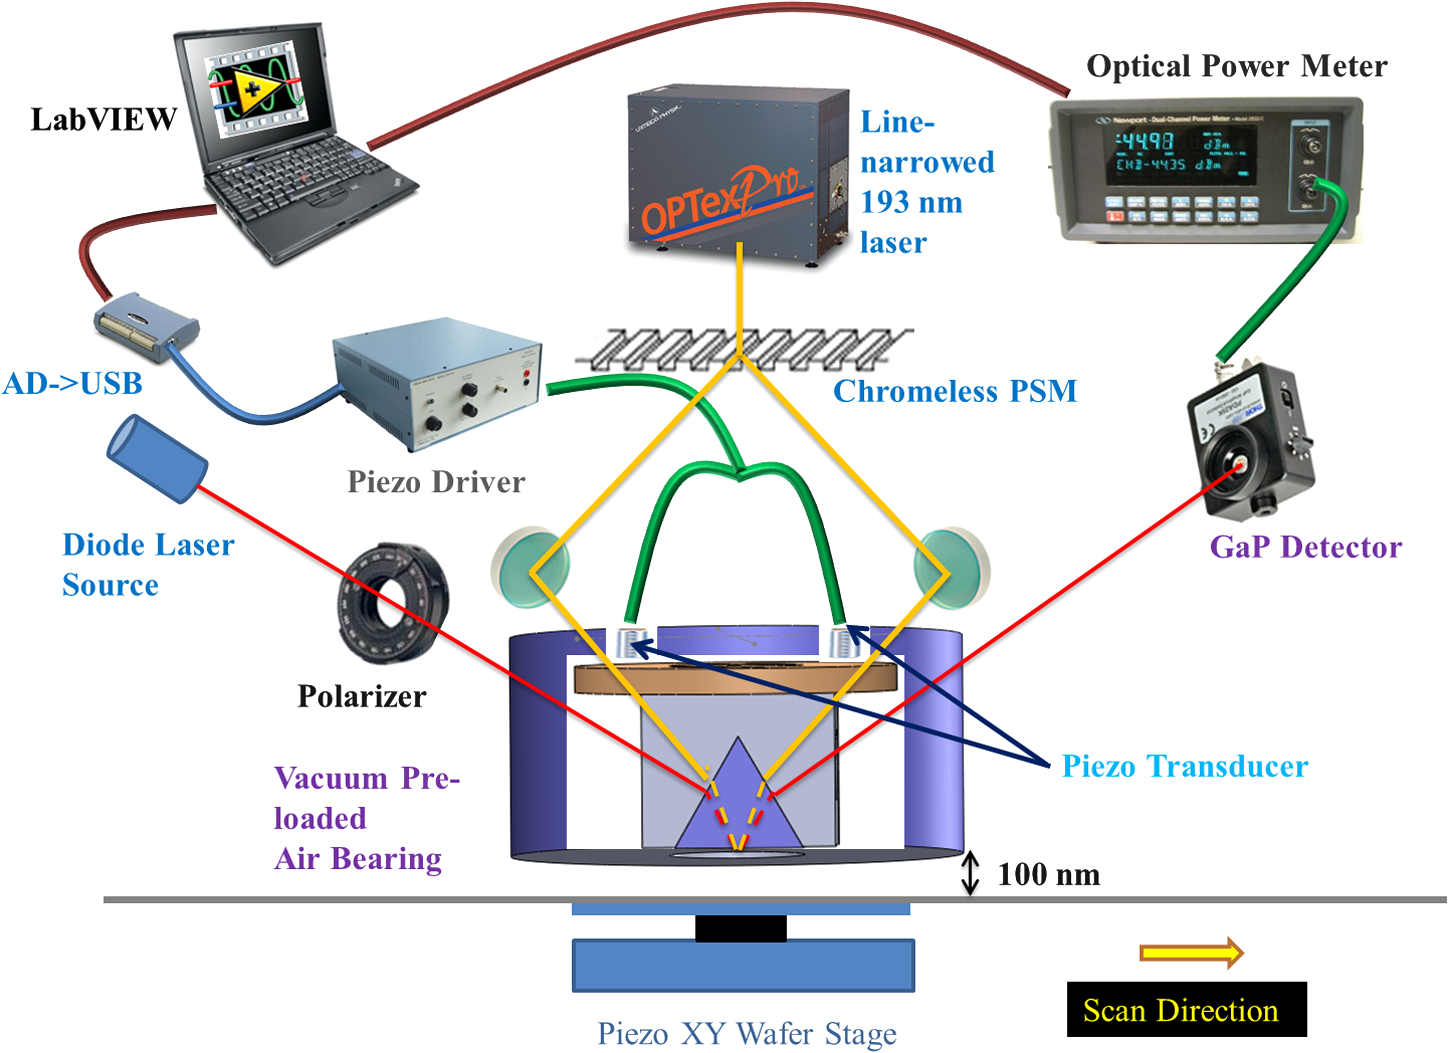 Scanning interference evanescent wave lithography for sub-22-nm